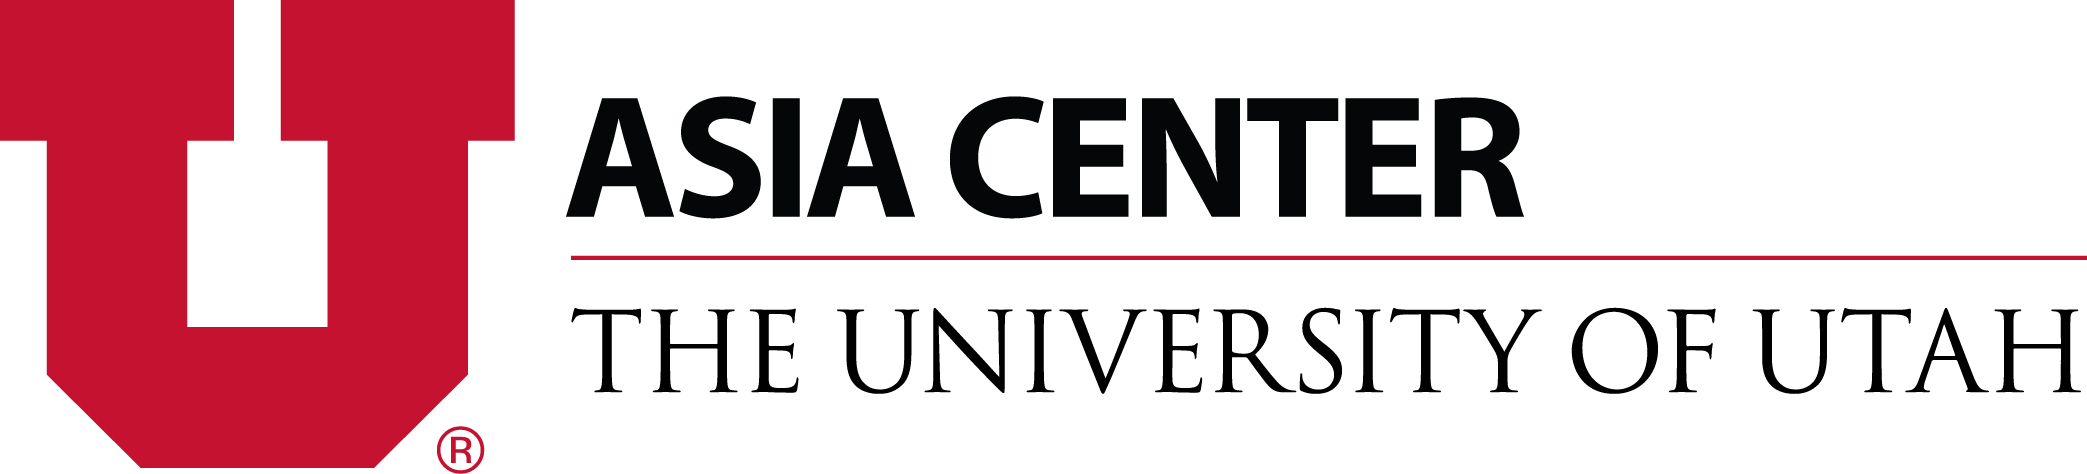 University of Utah Asia Center Logo